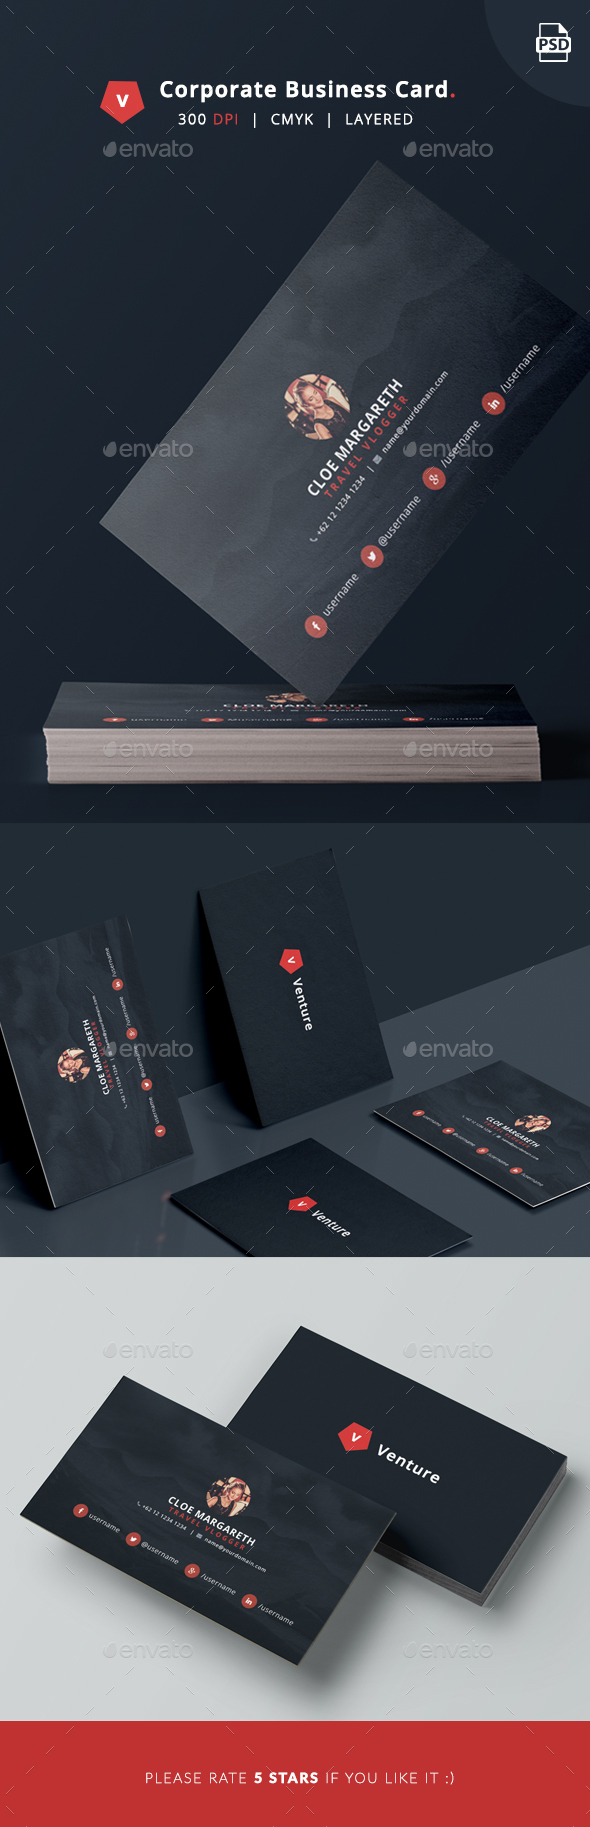 Corporate Business Card - Venture - Corporate Business Cards